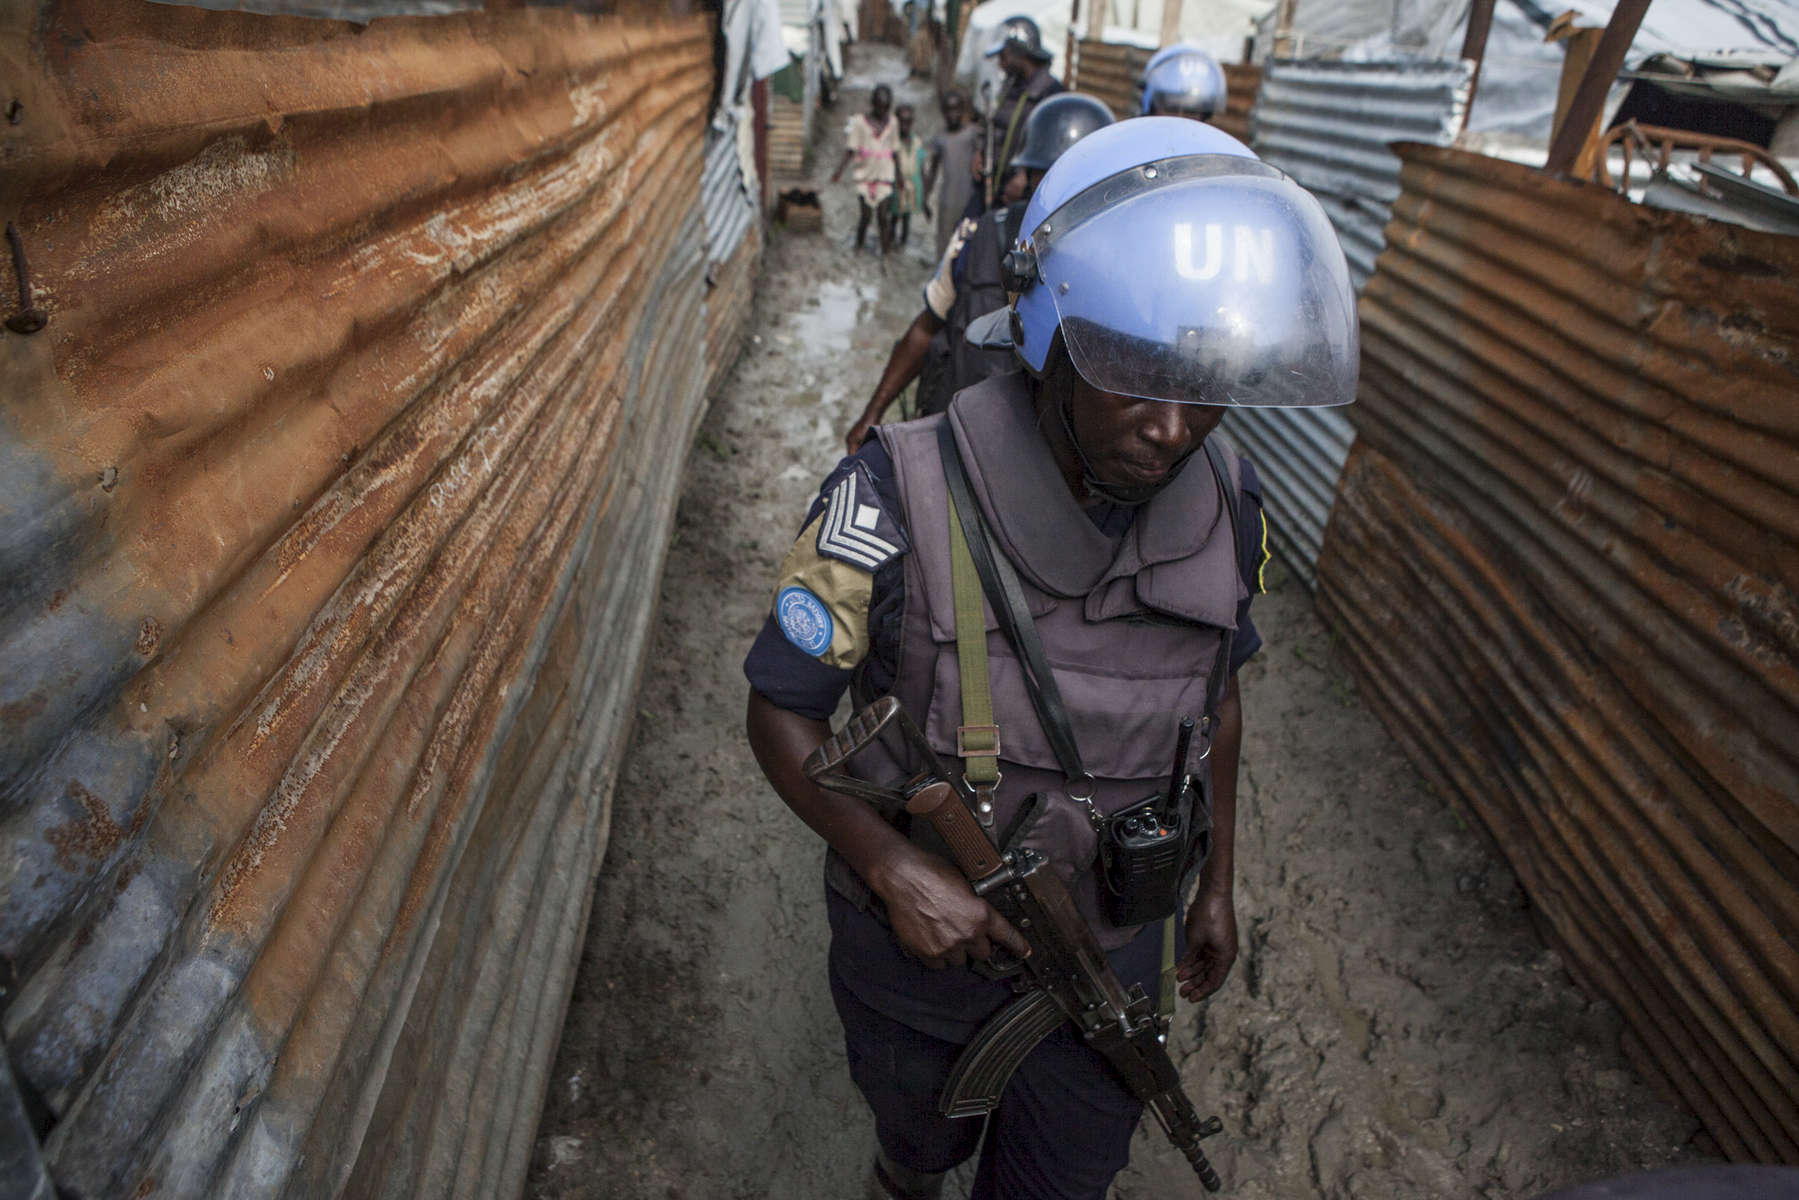 Members of the United Nations Police patrol the Protection of Civilians Site searching for contraband in Malakal, South Sudan on Friday, July 15, 2016